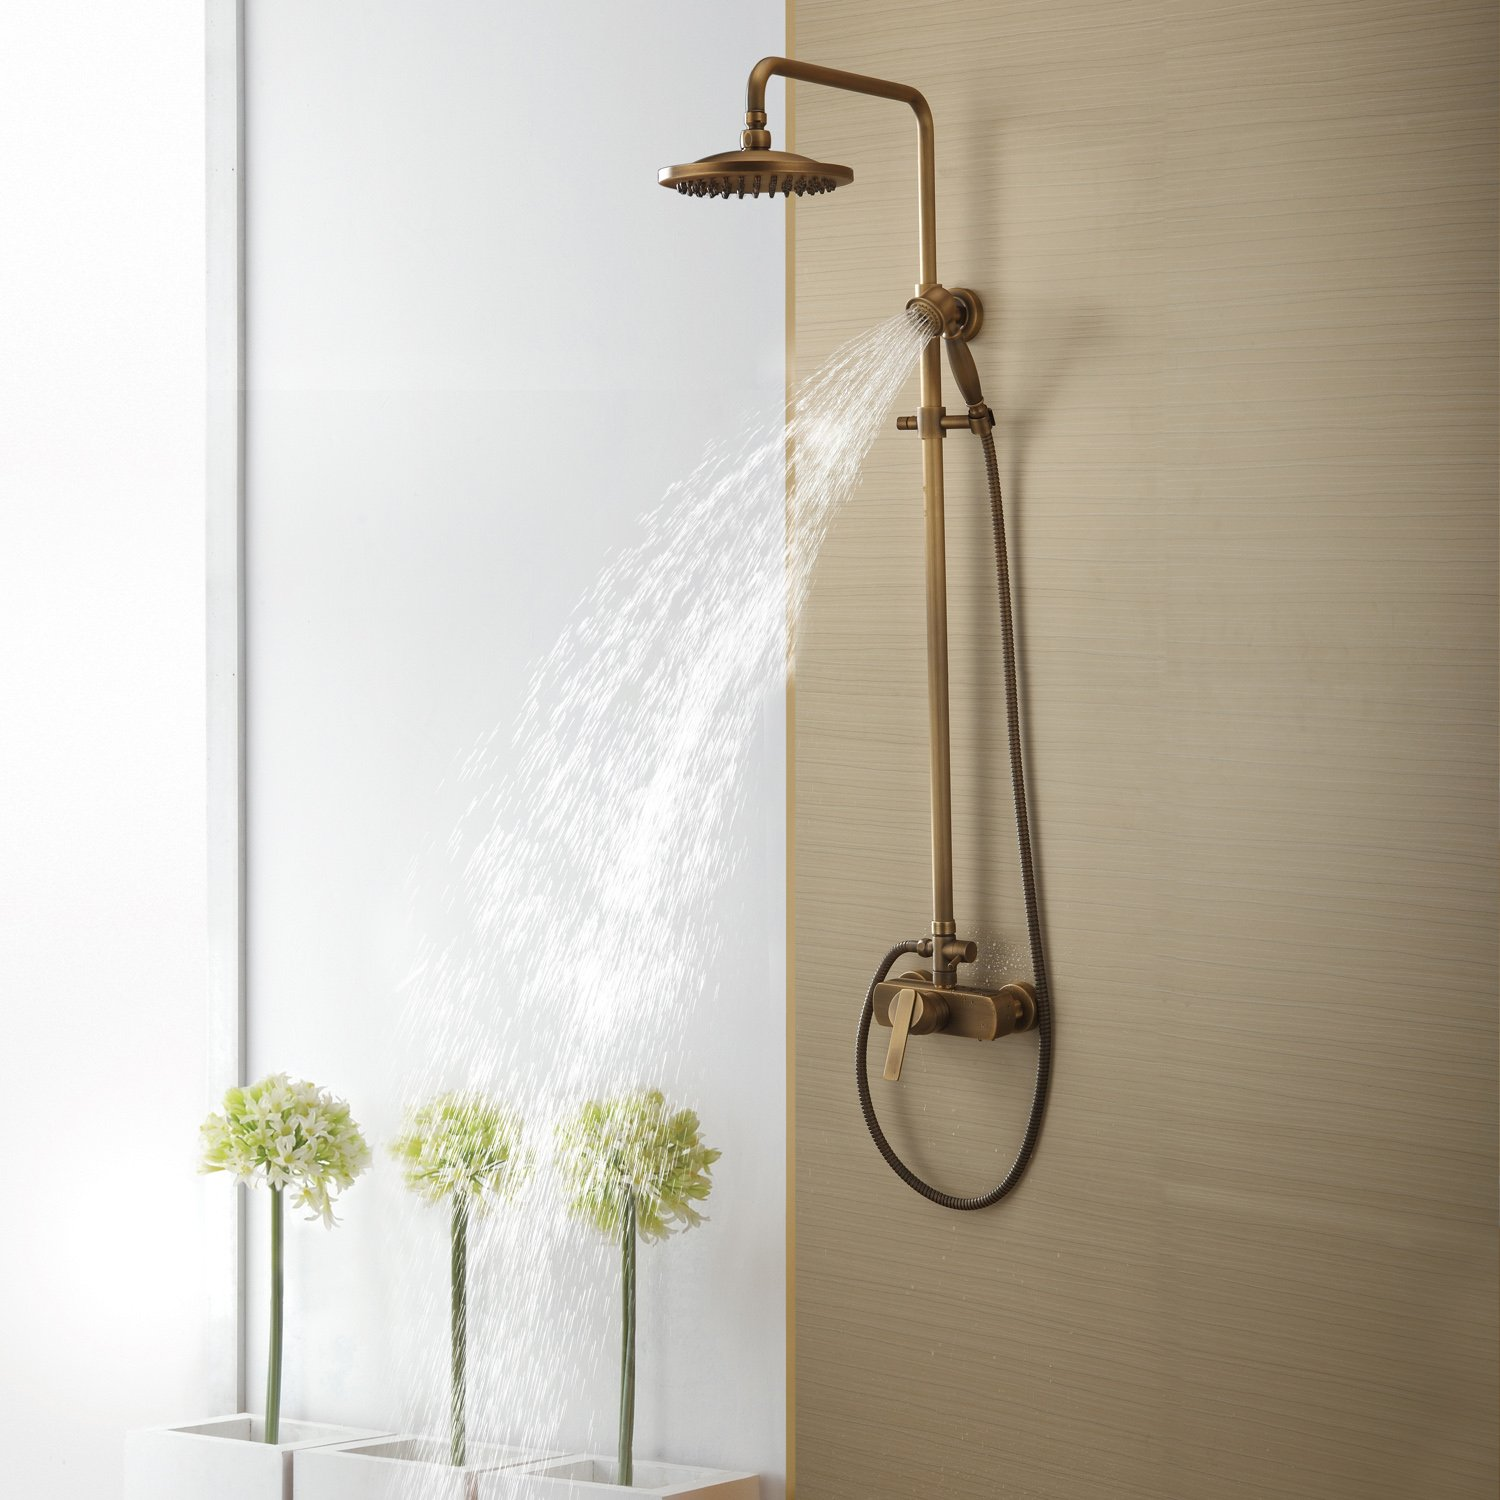 Lightinthebox® Sprinkle Antique Brass Tub Shower Faucet with 8 ...